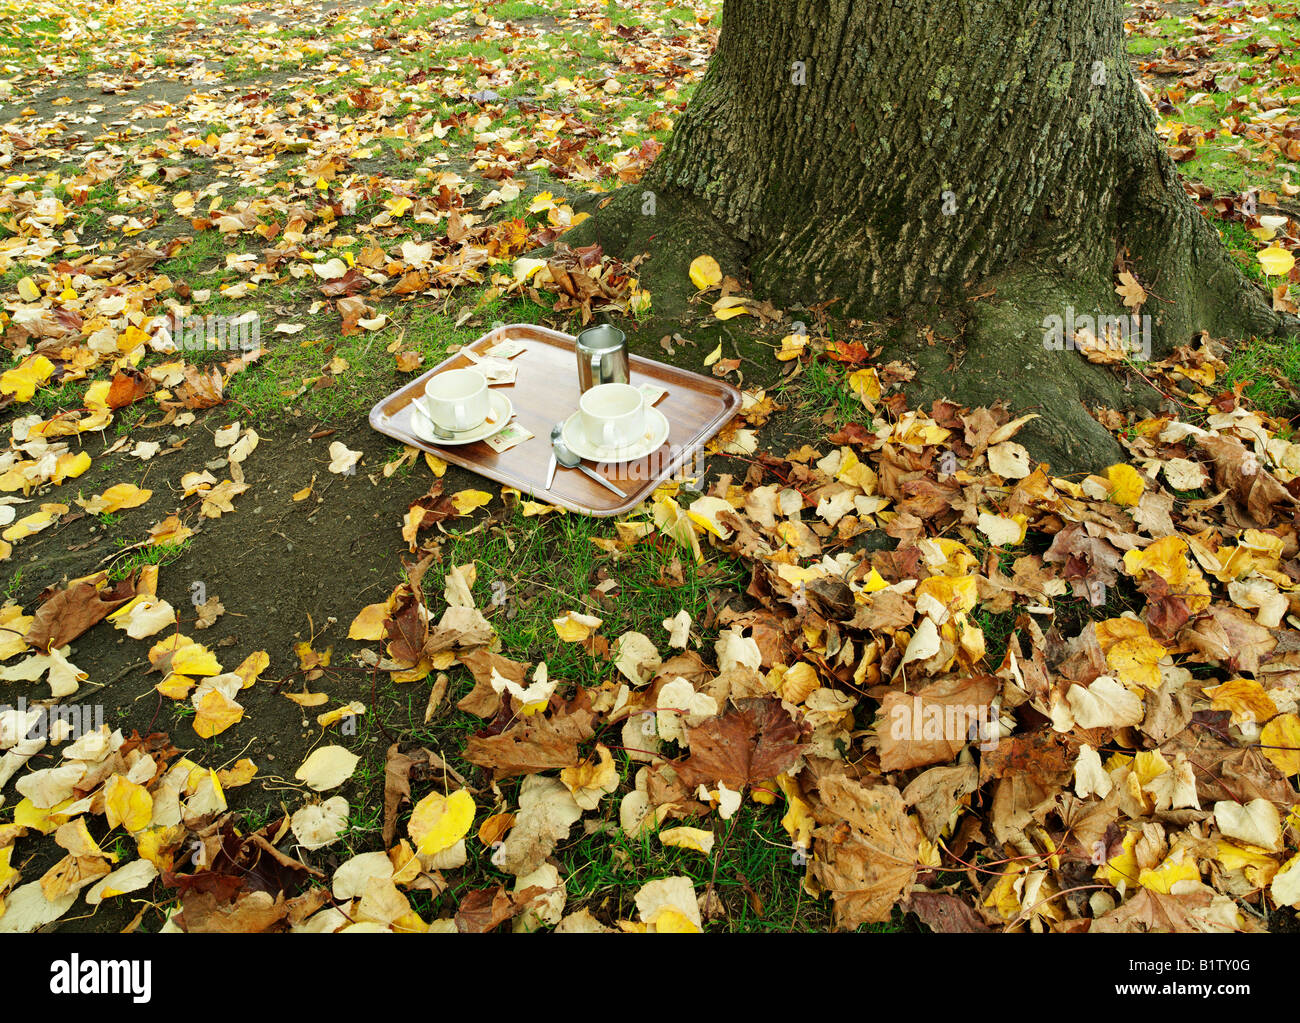 tray with tea cups abandoned under tree - Stock Image